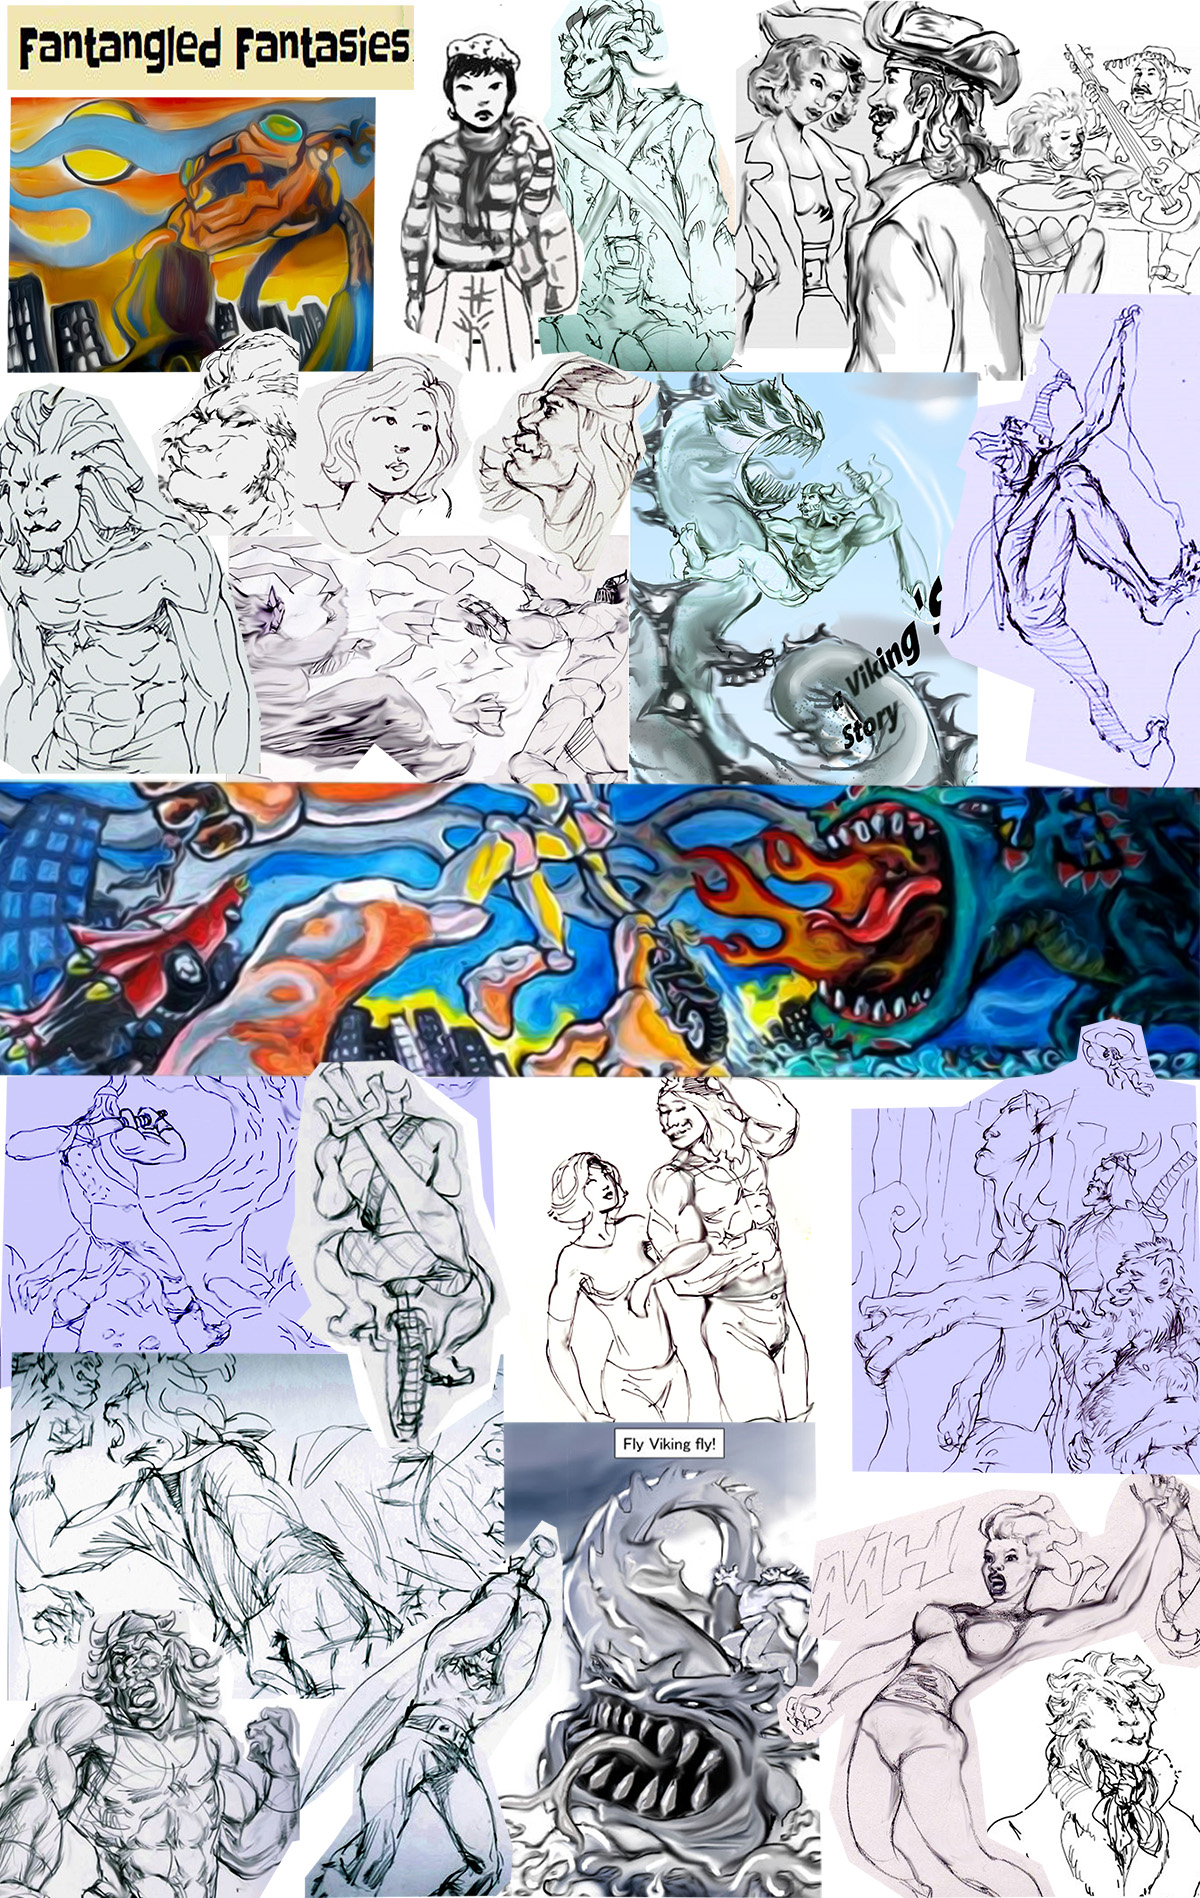 collage of best images from various comics